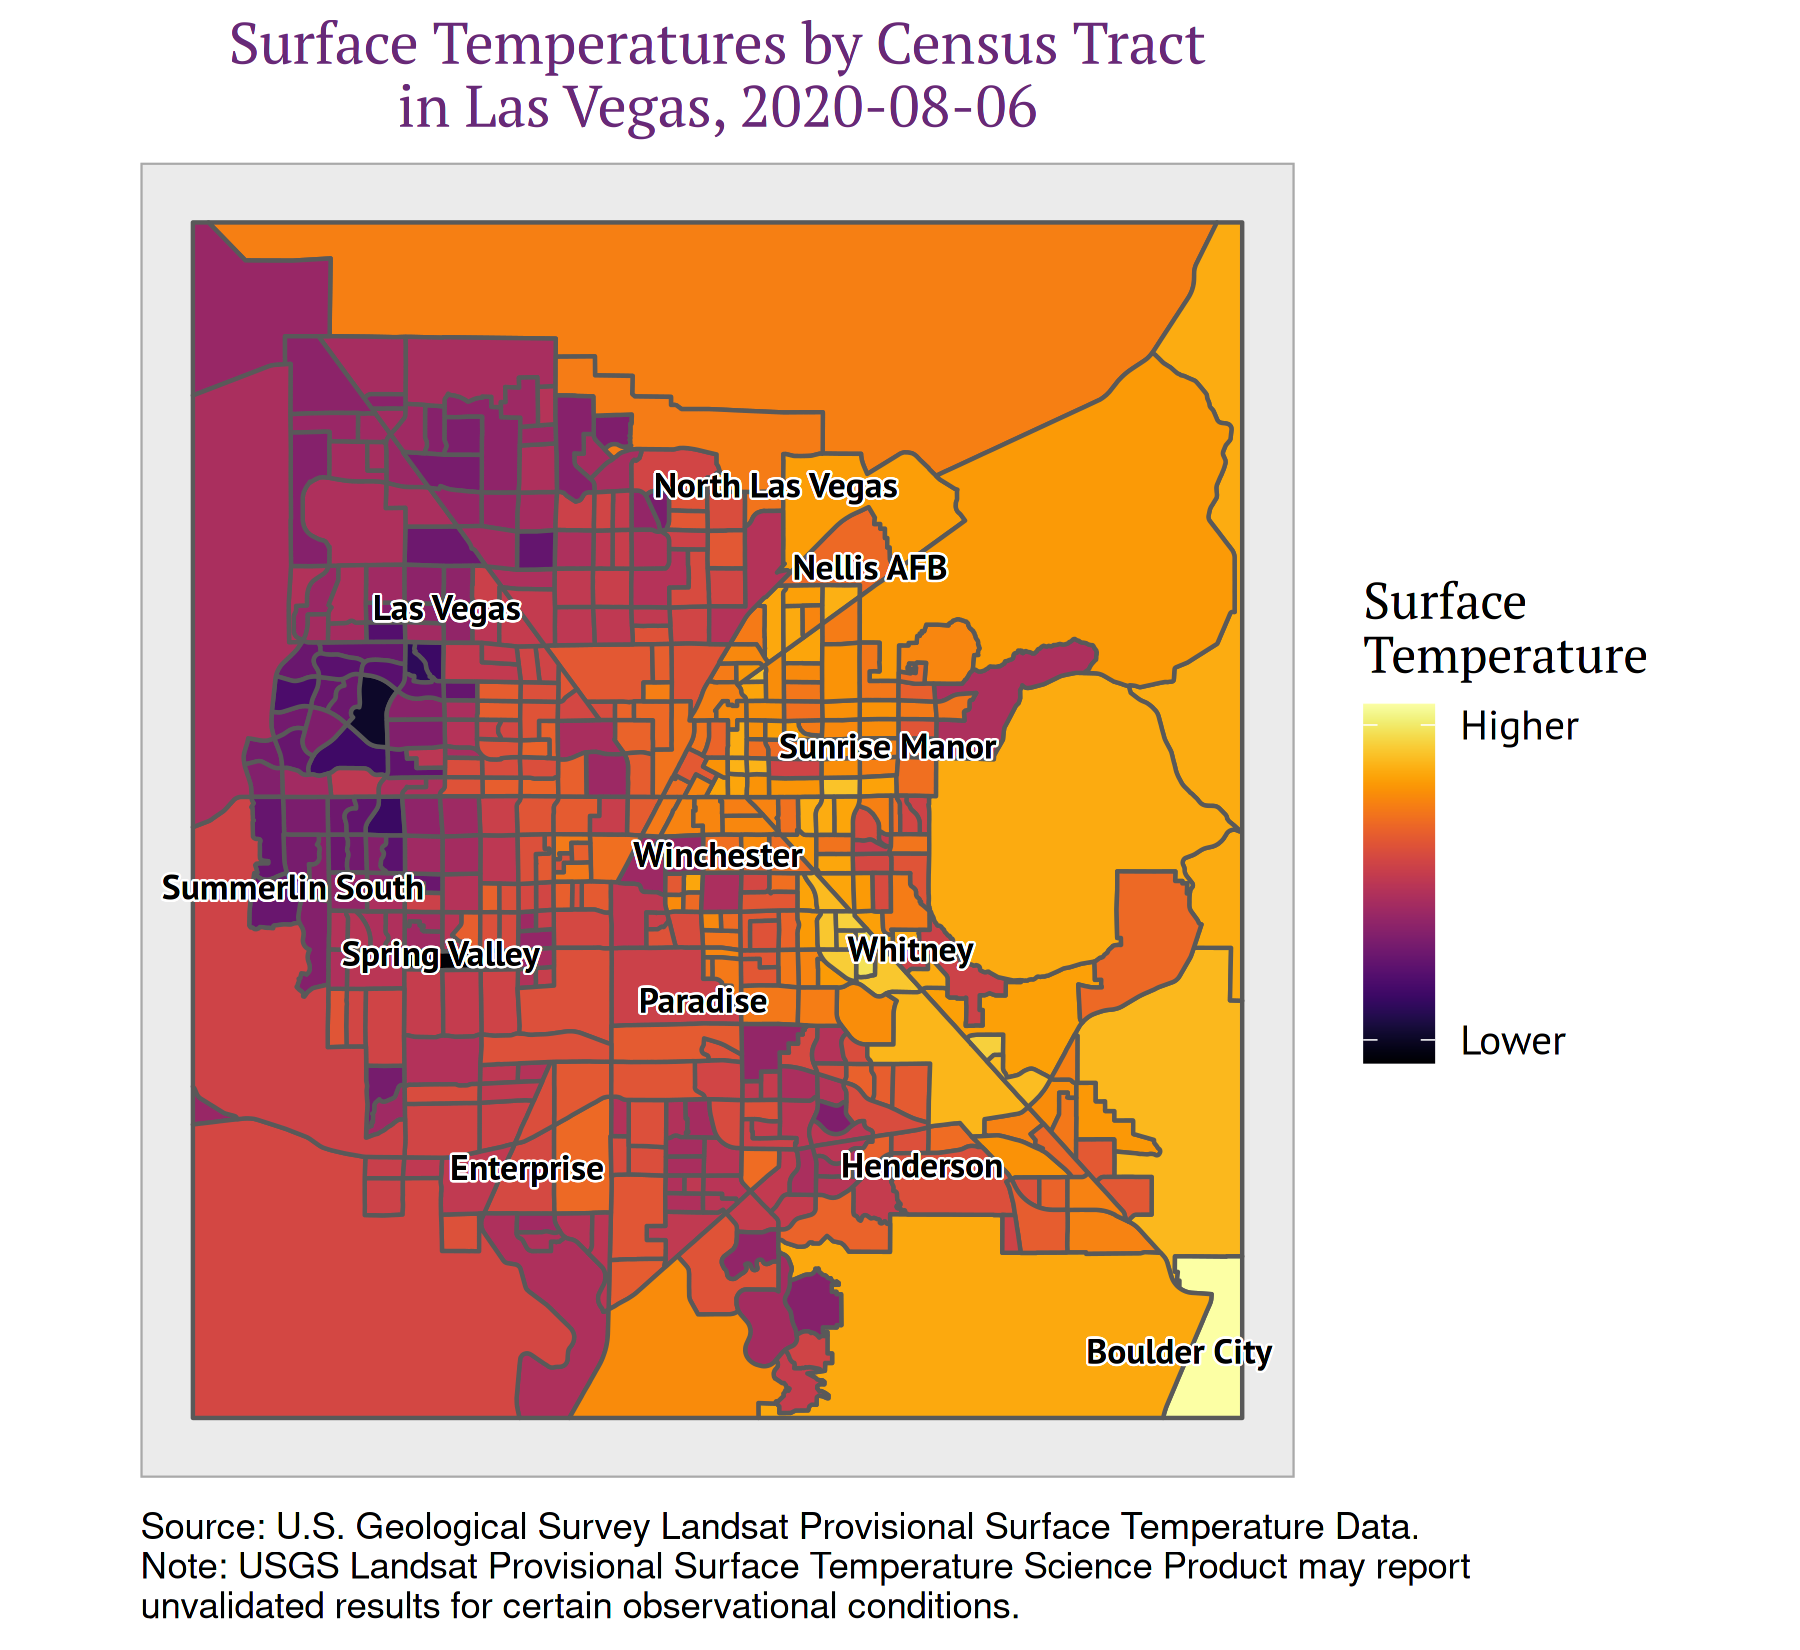 Figure 4: Visualizing Urban Heat by Census Tract in Las Vegas, Nevada